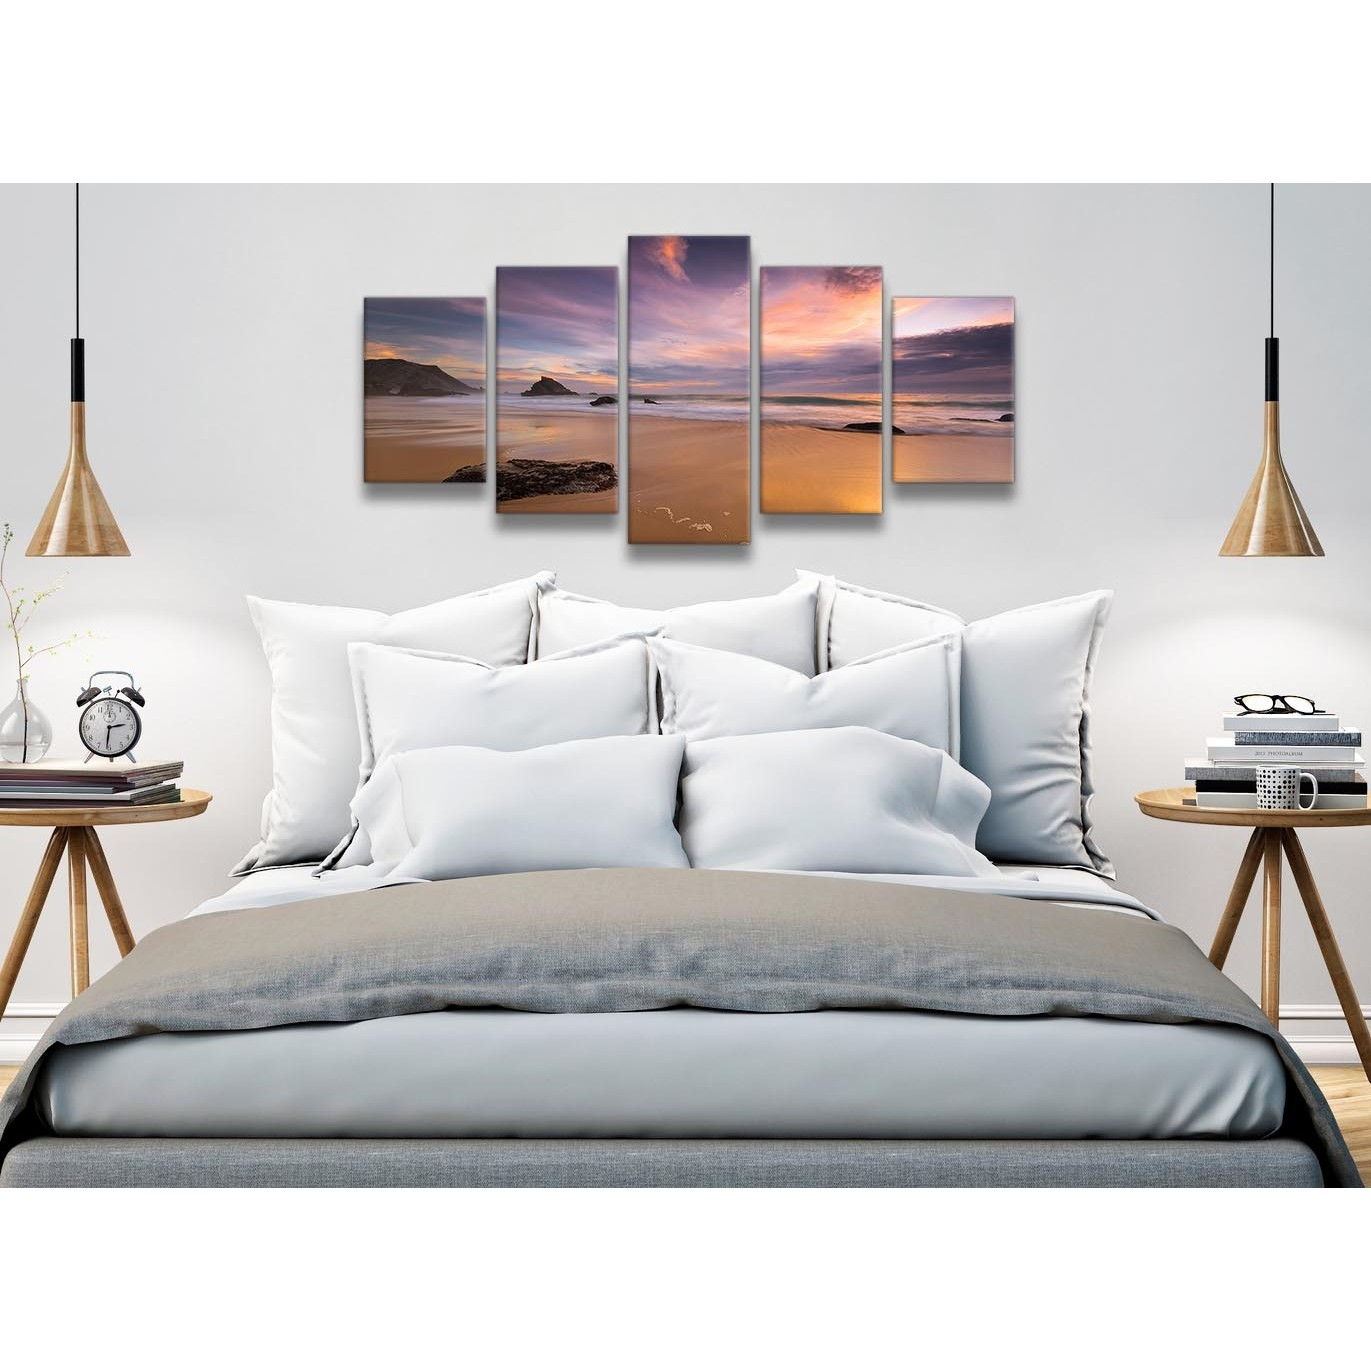 5 Piece Canvas Wall Art Prints – Panoramic Landscape Beach Sunset Pertaining To Newest Panoramic Wall Art (View 1 of 15)